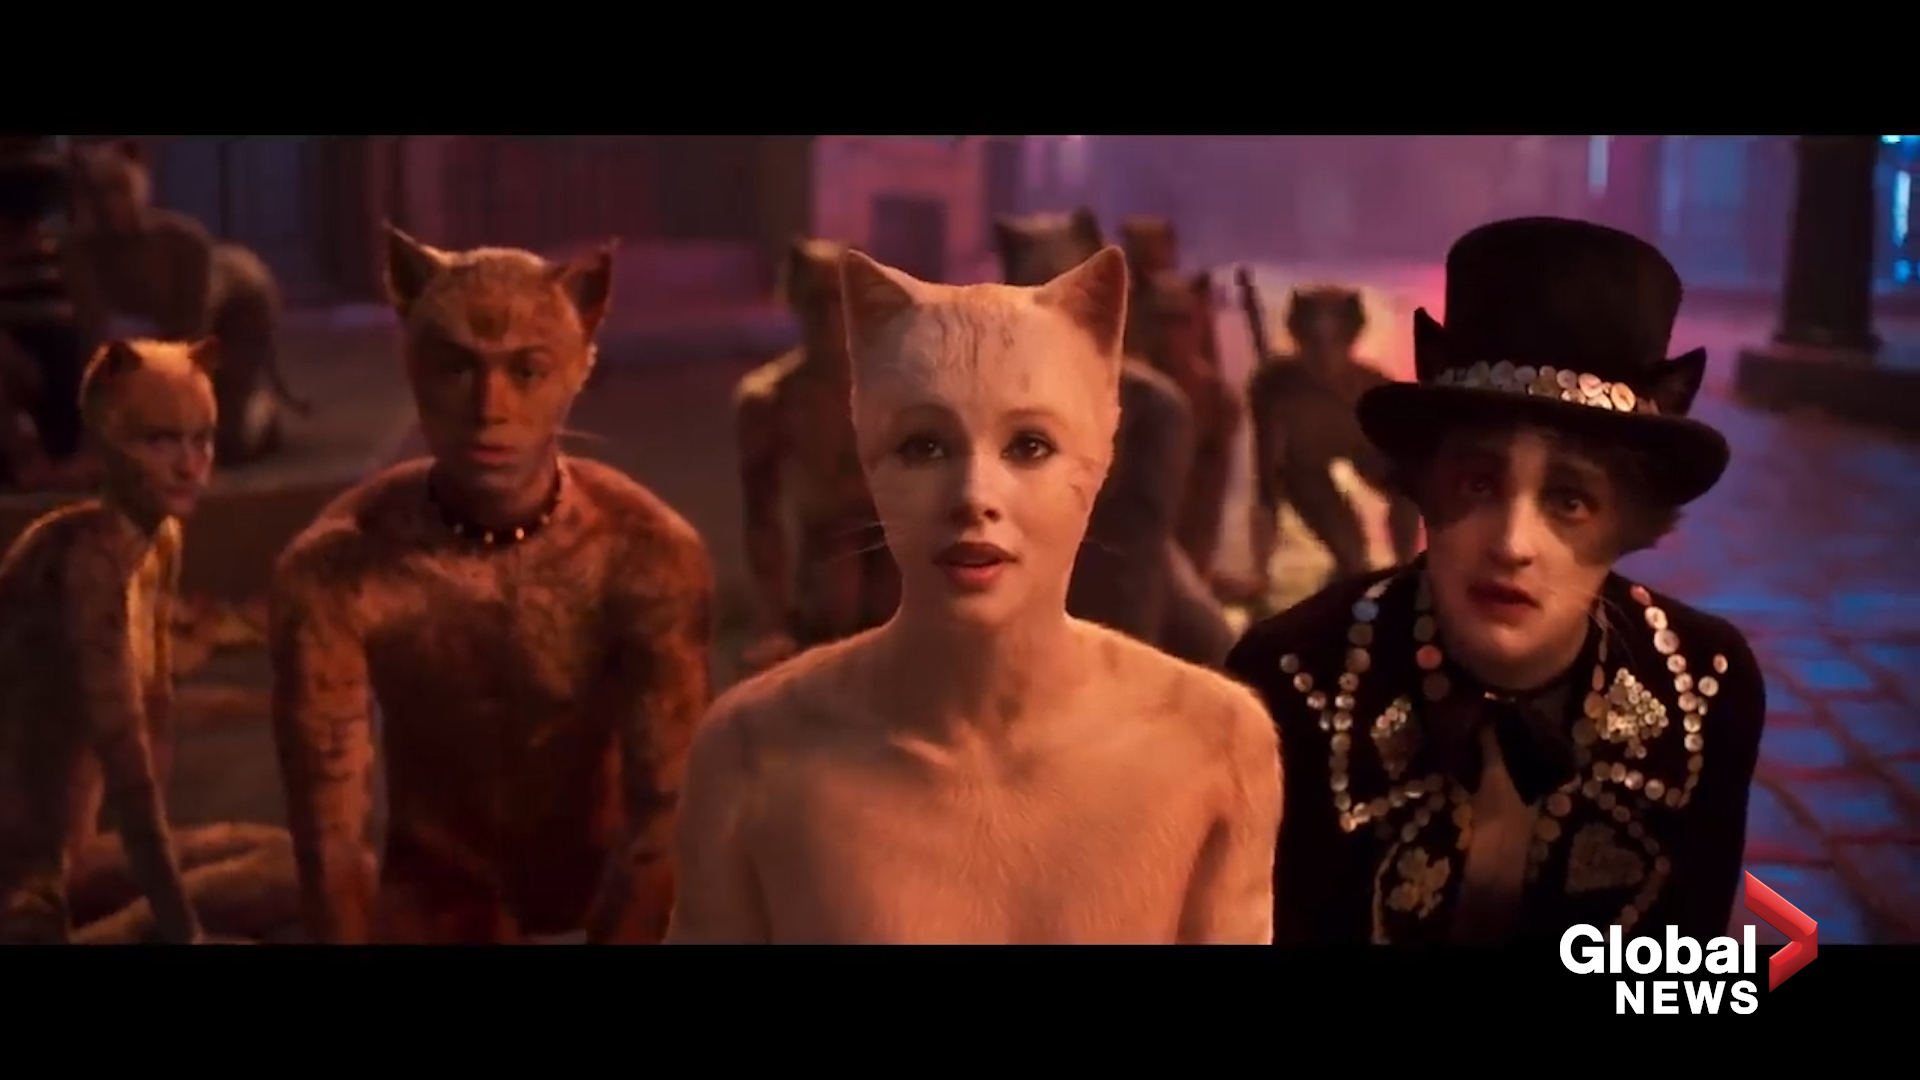 The Cats movie trailer just came out - and people are freaking out